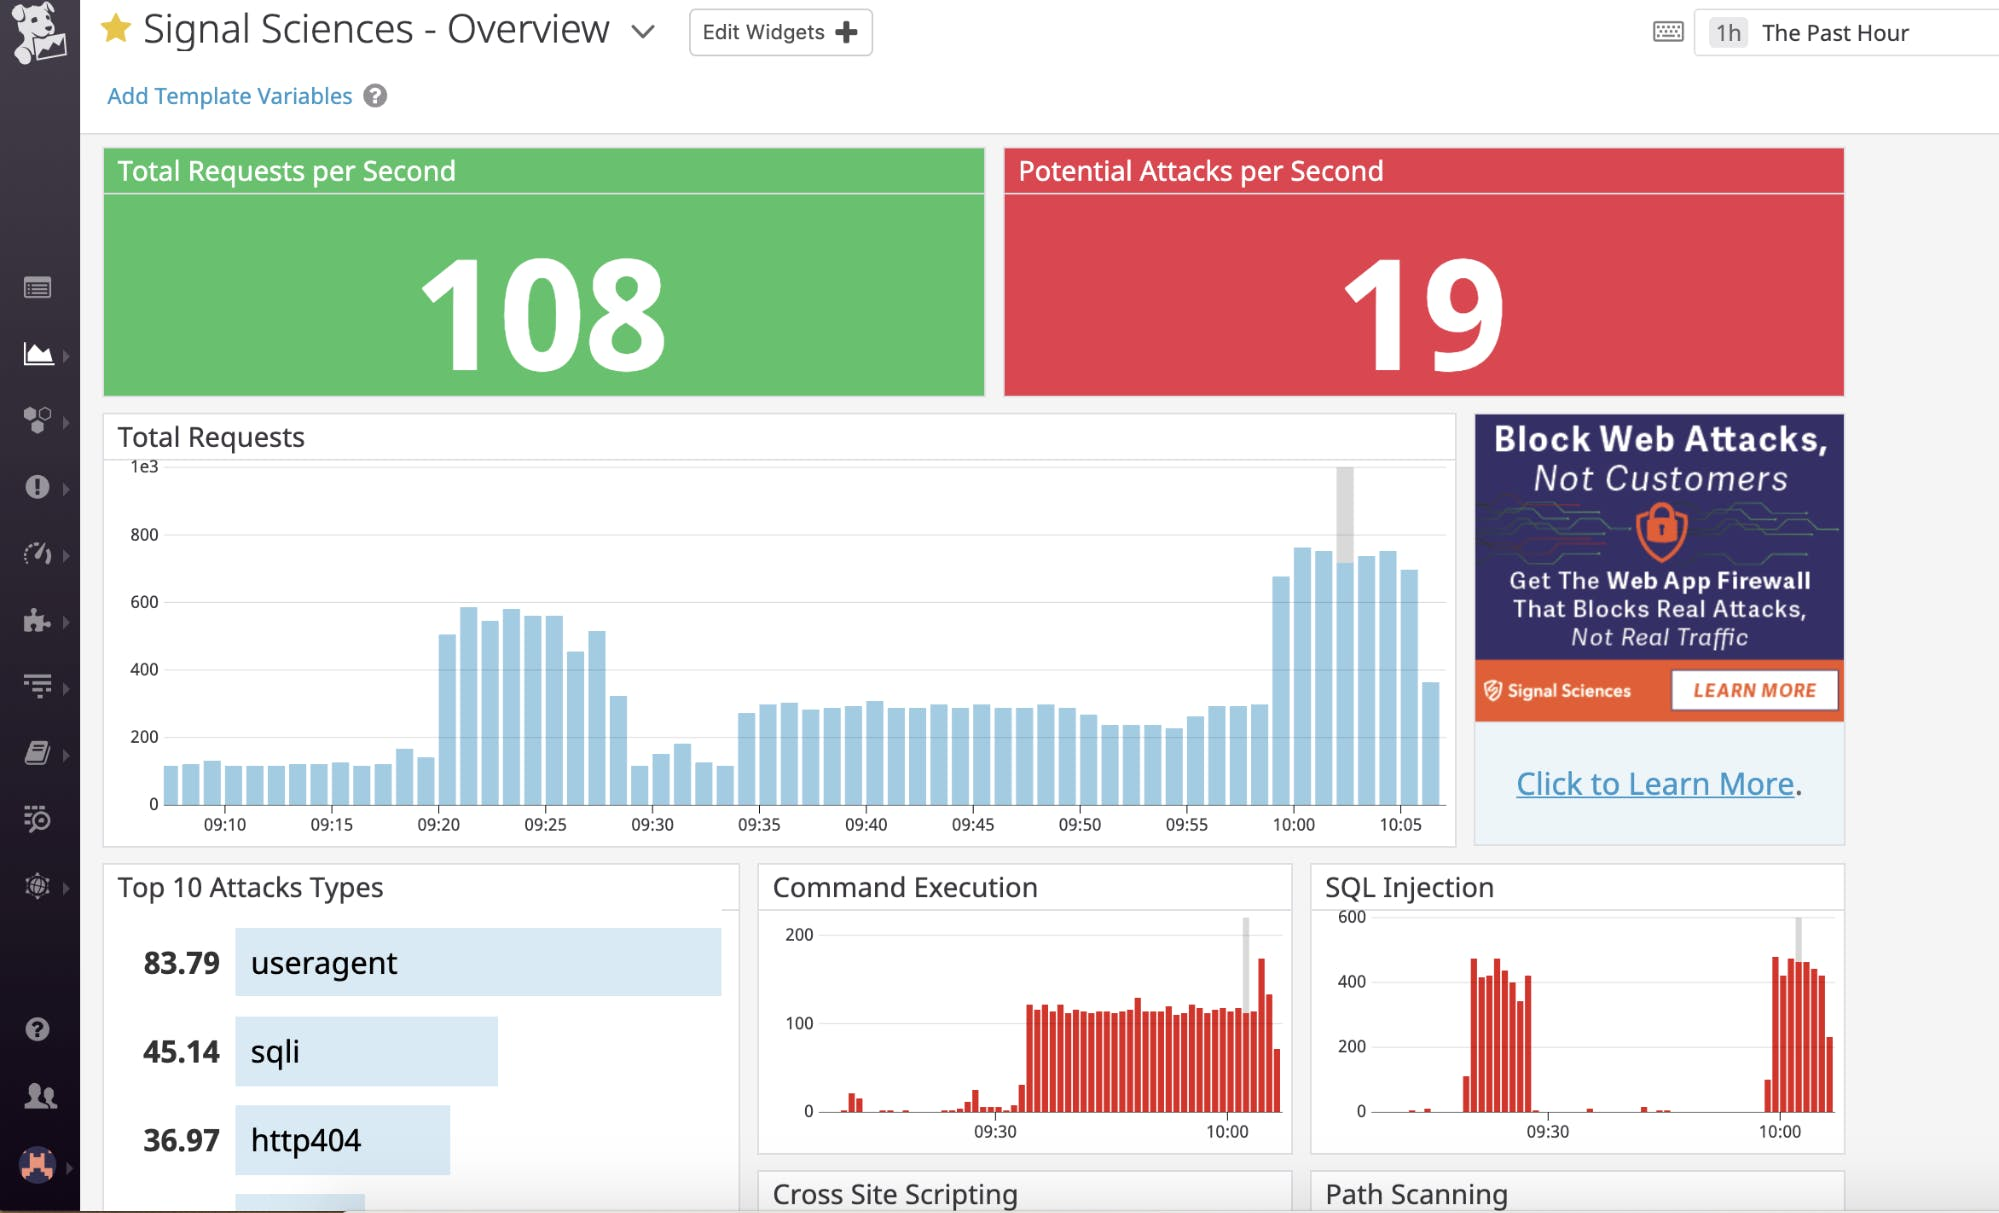 Signal Sciences Brings Real Time Web Attack Visibility To